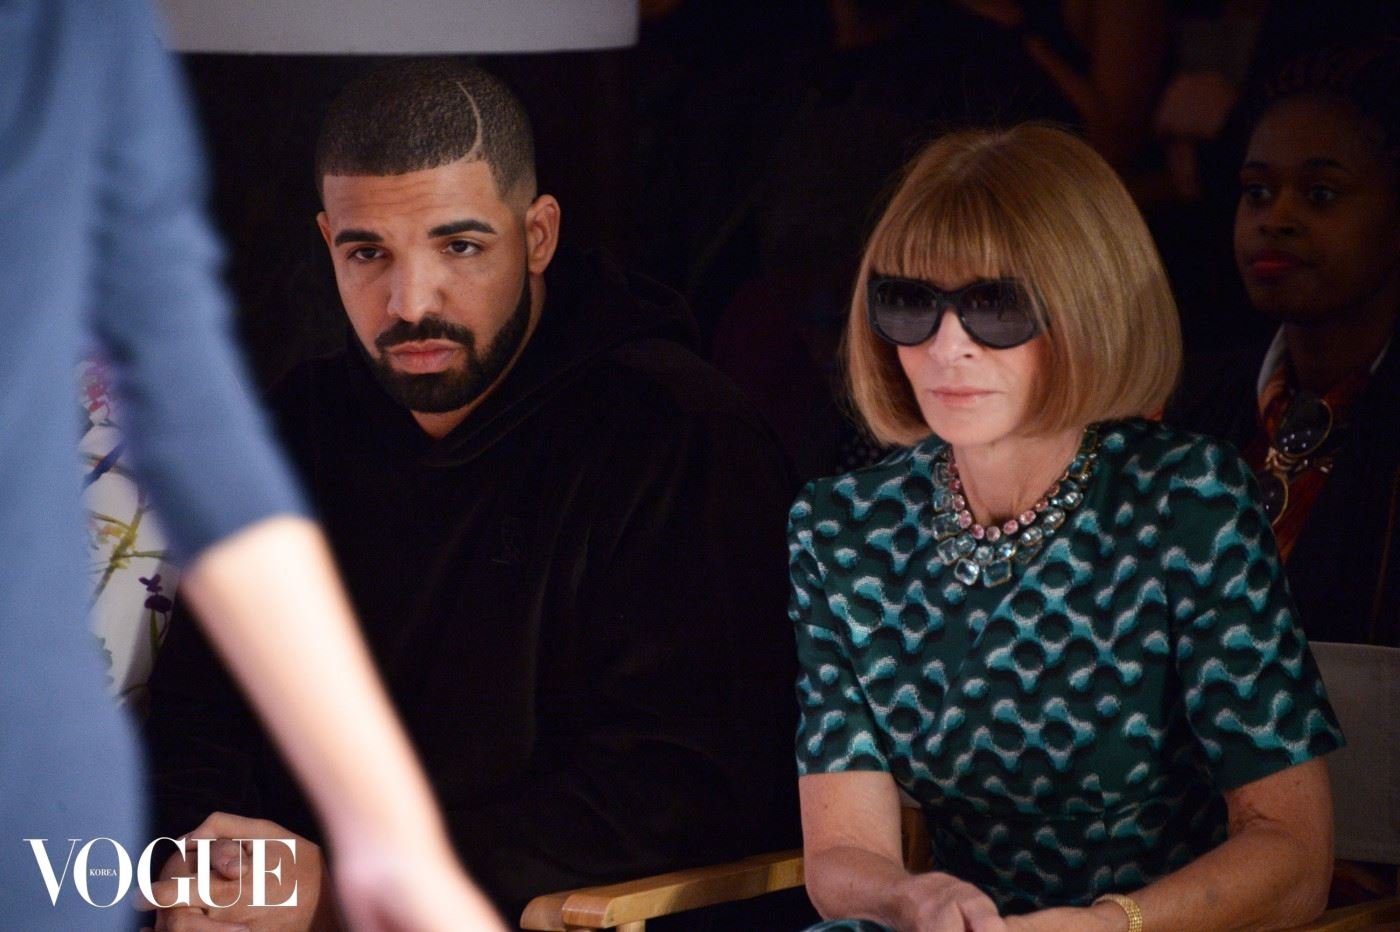 NEW YORK, NY - SEPTEMBER 15: Drake and Anna Wintour attend the Serena Williams Signature Statementby HSN show during Spring 2016 Style360 on September 15, 2015 in New York City.  (Photo by Grant Lamos IV/Getty Images)